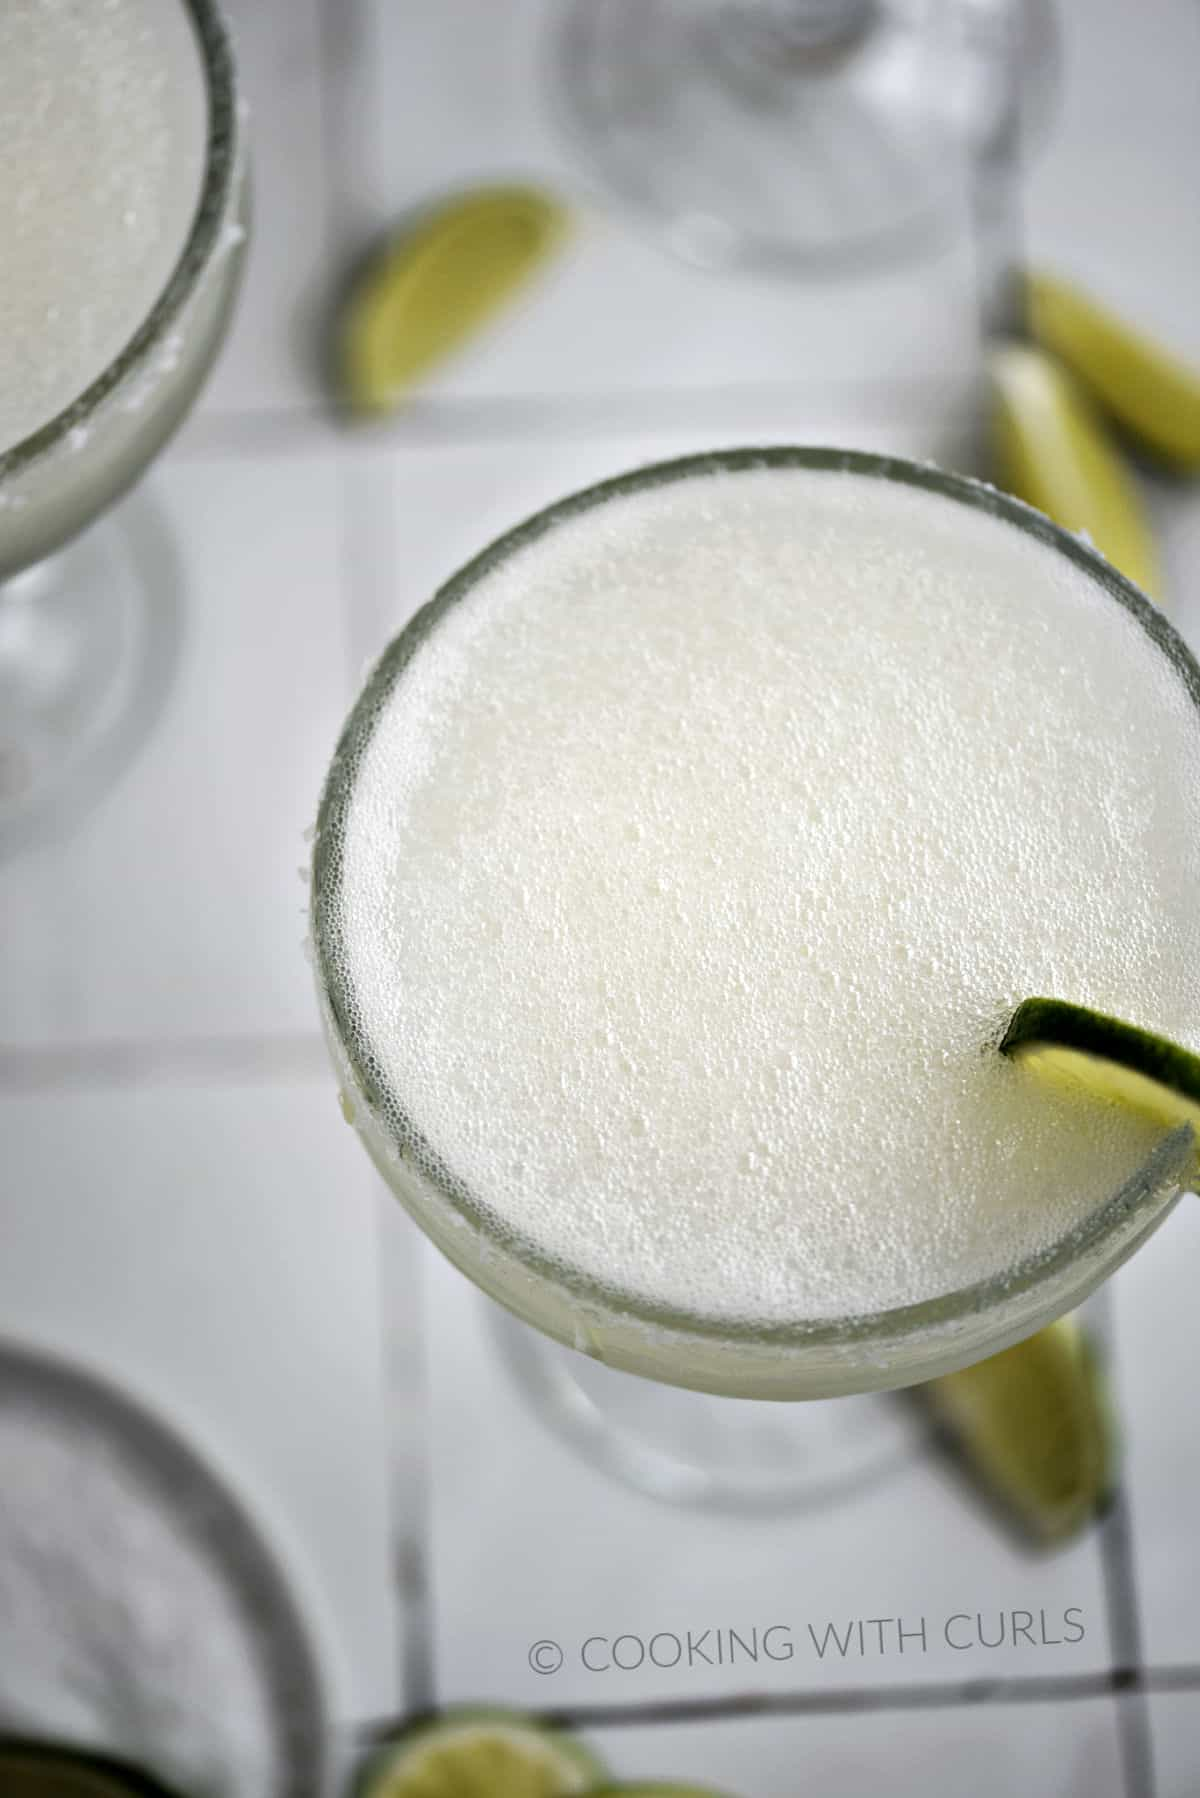 Looking down on a frothy frozen cocktail in a salt-rimmed margarita glass with a lime wheel garnish.